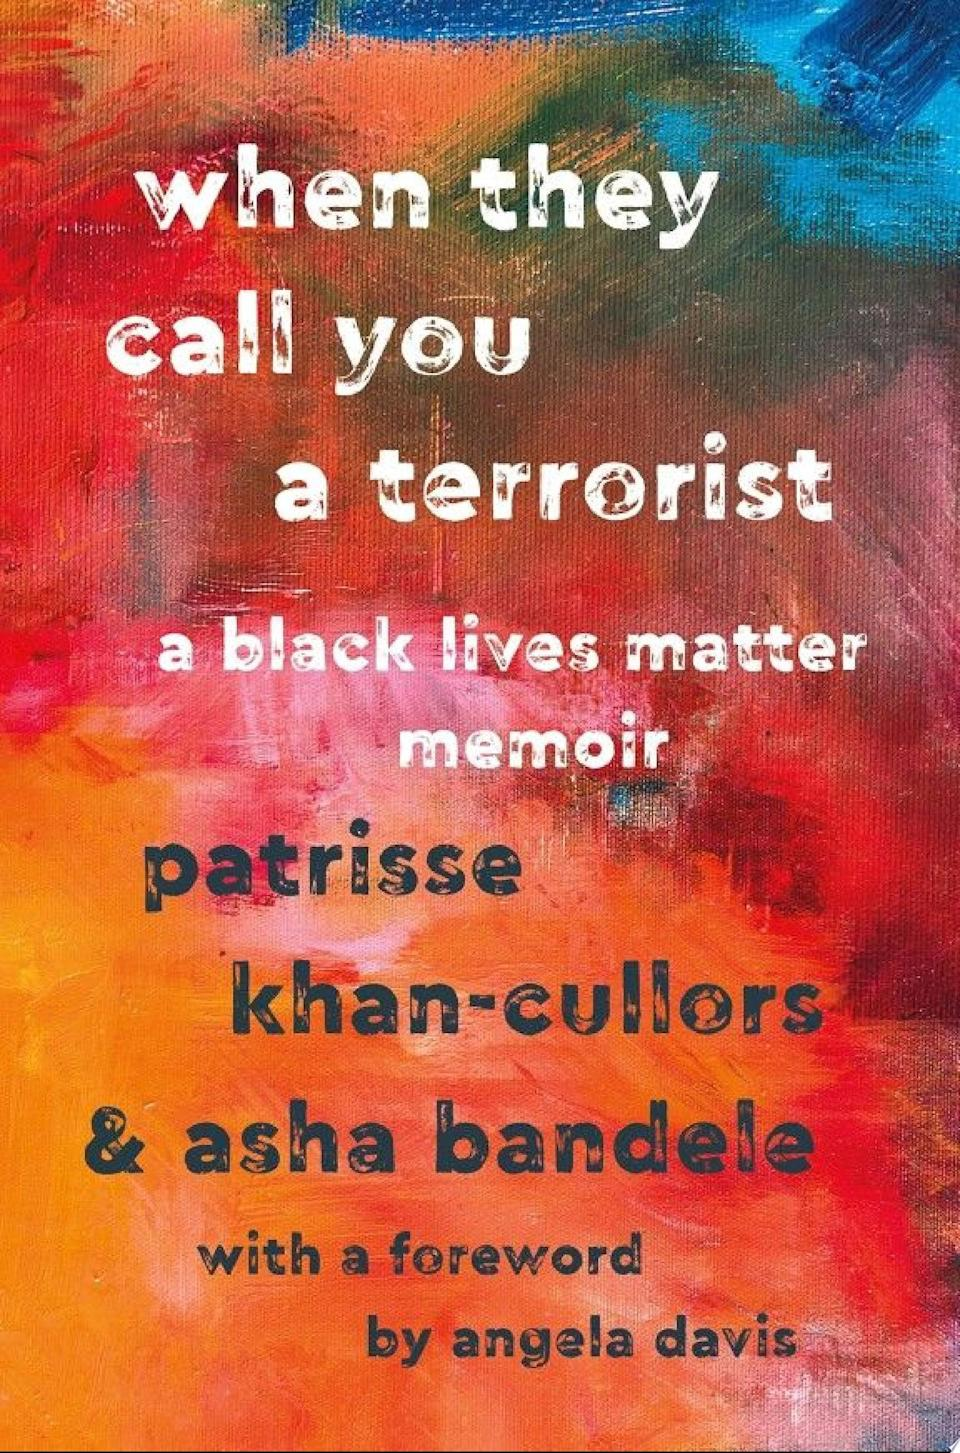 """<p>Patrisse Khan-Cullors's journey to activism and her personal pain and determination are both laid bare in this lyrical autobiography. <a href=""""https://bookshop.org/books/when-they-call-you-a-terrorist-a-black-lives-matter-memoir/9781250171085"""" class=""""link rapid-noclick-resp"""" rel=""""nofollow noopener"""" target=""""_blank"""" data-ylk=""""slk:When They Call You a Terrorist""""><strong>When They Call You a Terrorist</strong></a> is a visceral meditation on the personal and institutional forces that gave rise to Khan-Cullors's activism around race and mental-health advocacy - and a clear-eyed manifesto about a social-justice movement we sorely need.</p>"""